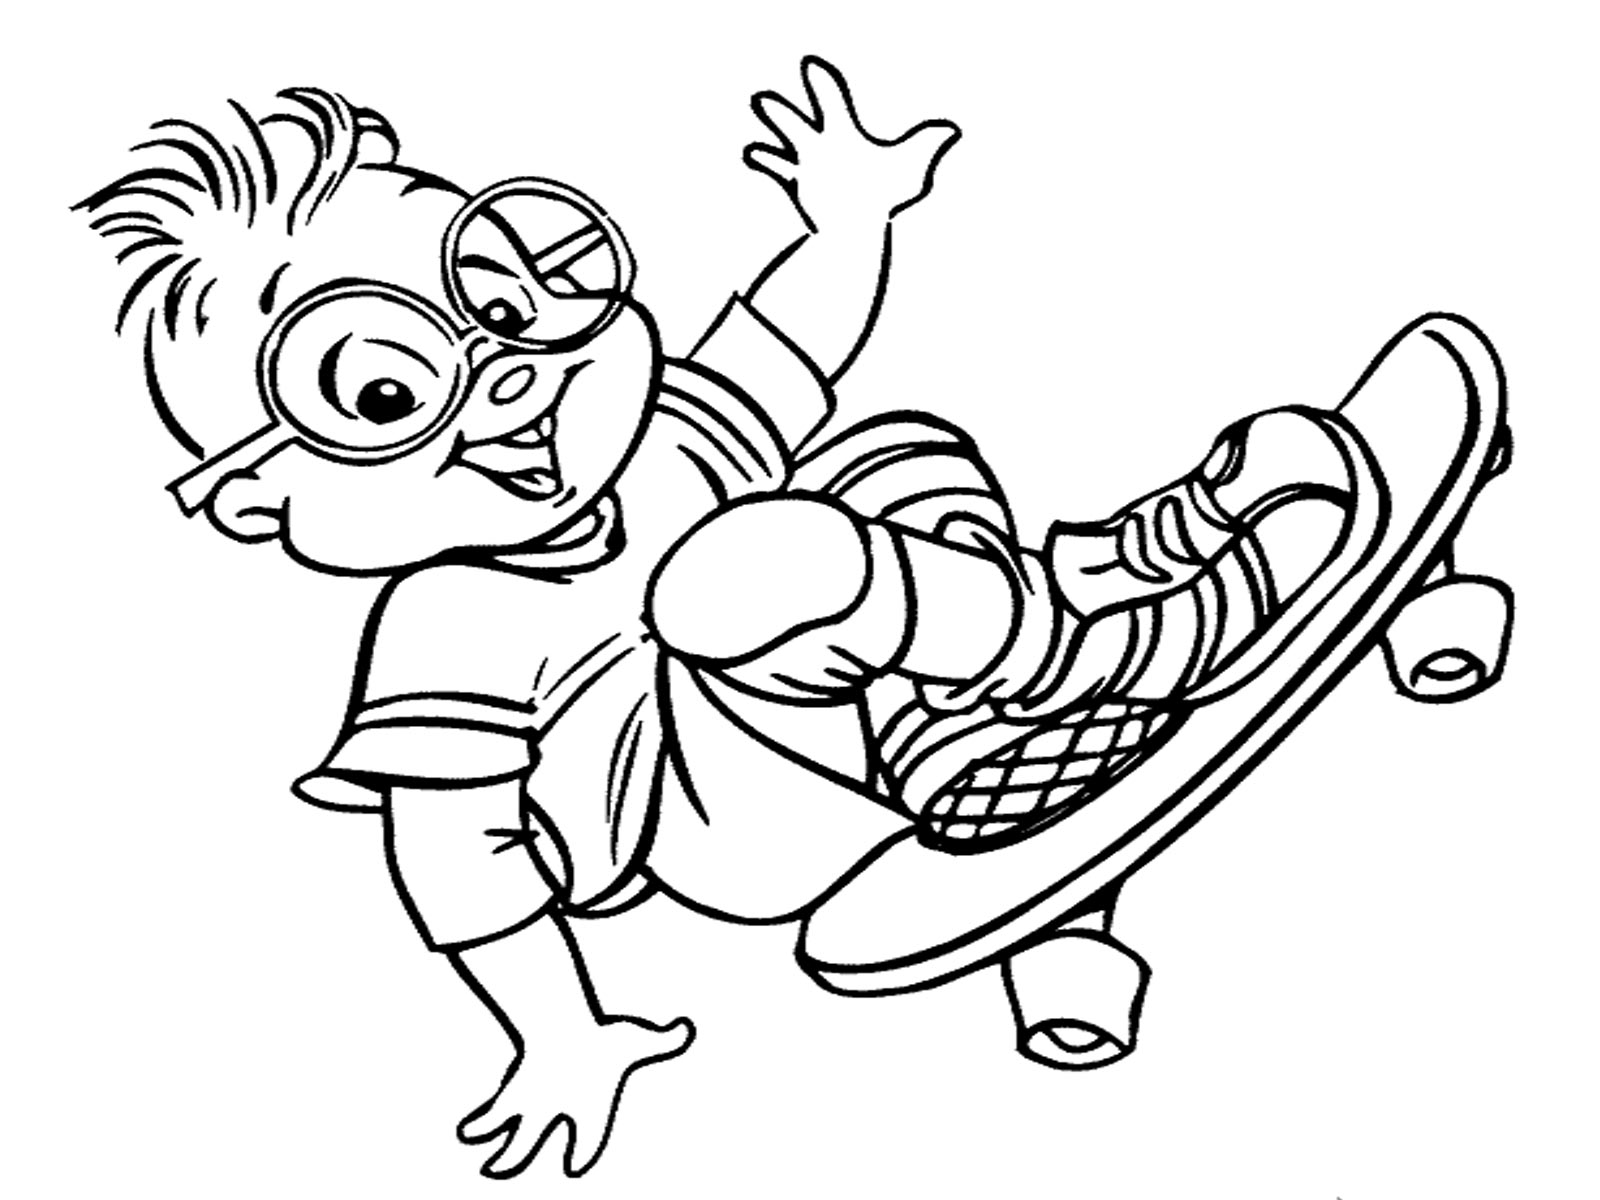 Alvin and the chipmunks coloring pages realistic for Chipmunks coloring pages